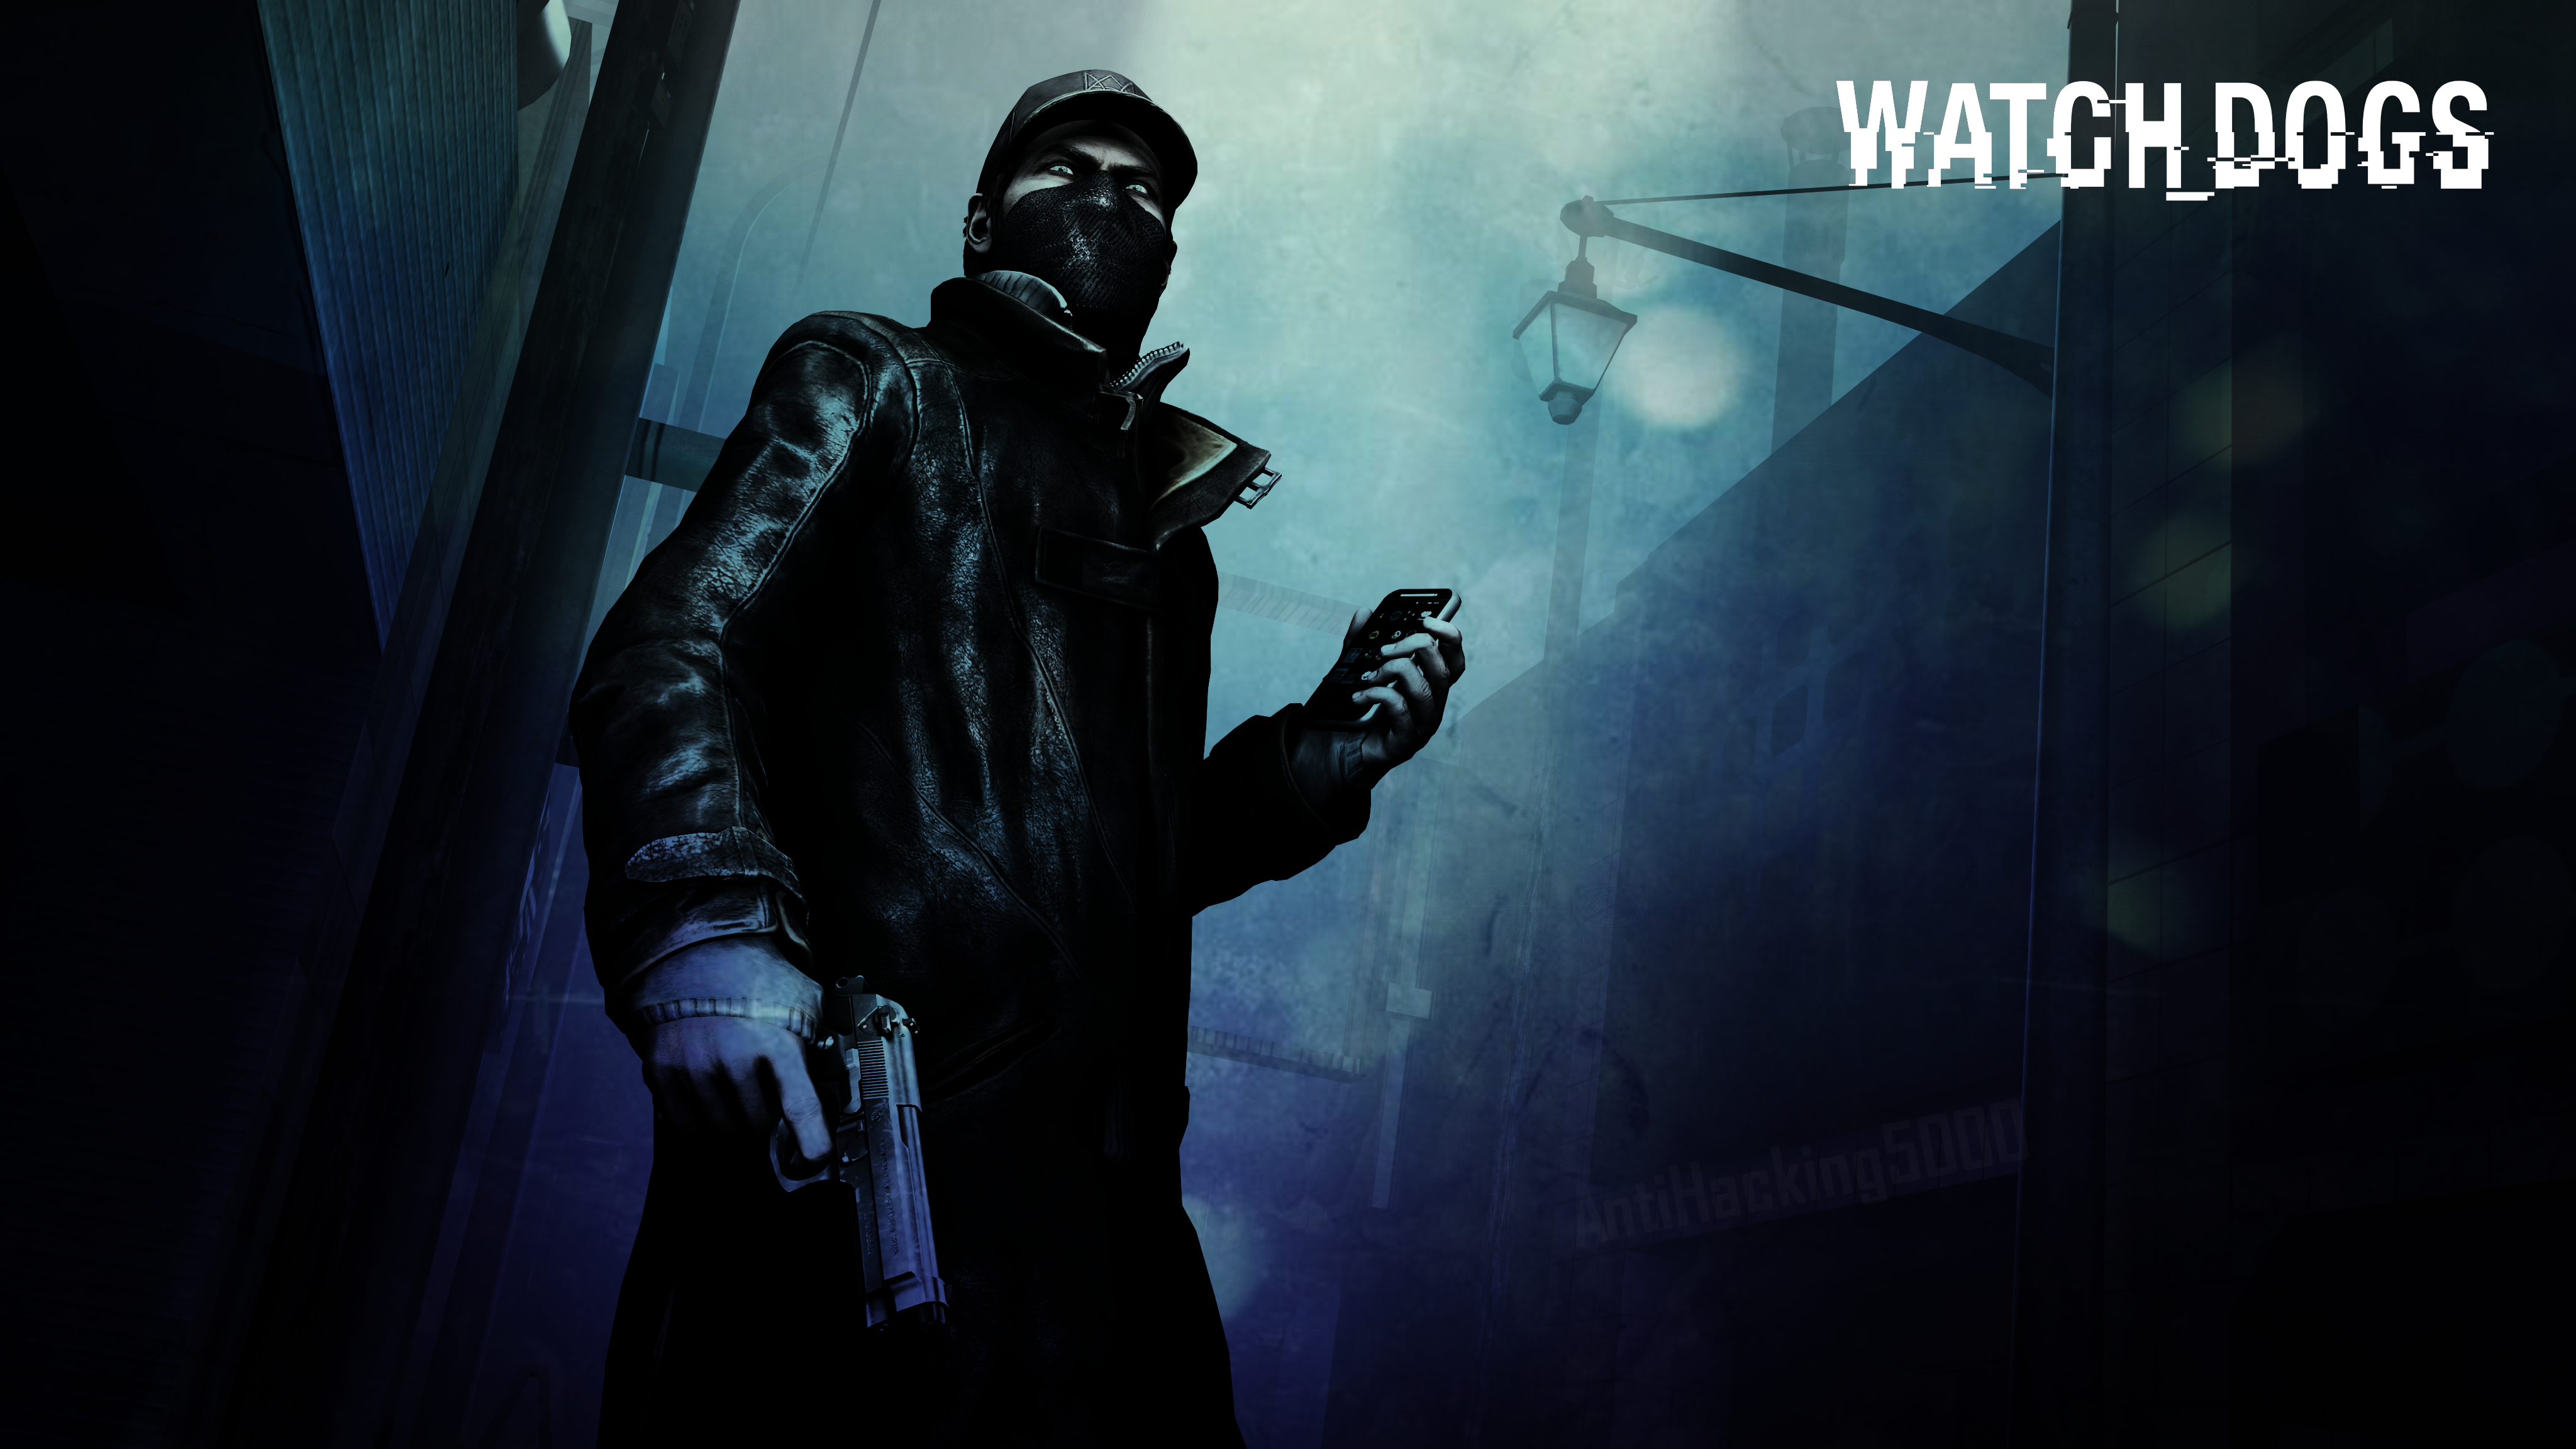 HDQ Beautiful Watchdogs Images & Wallpapers (Andrew Gipson, 07/01/2014)